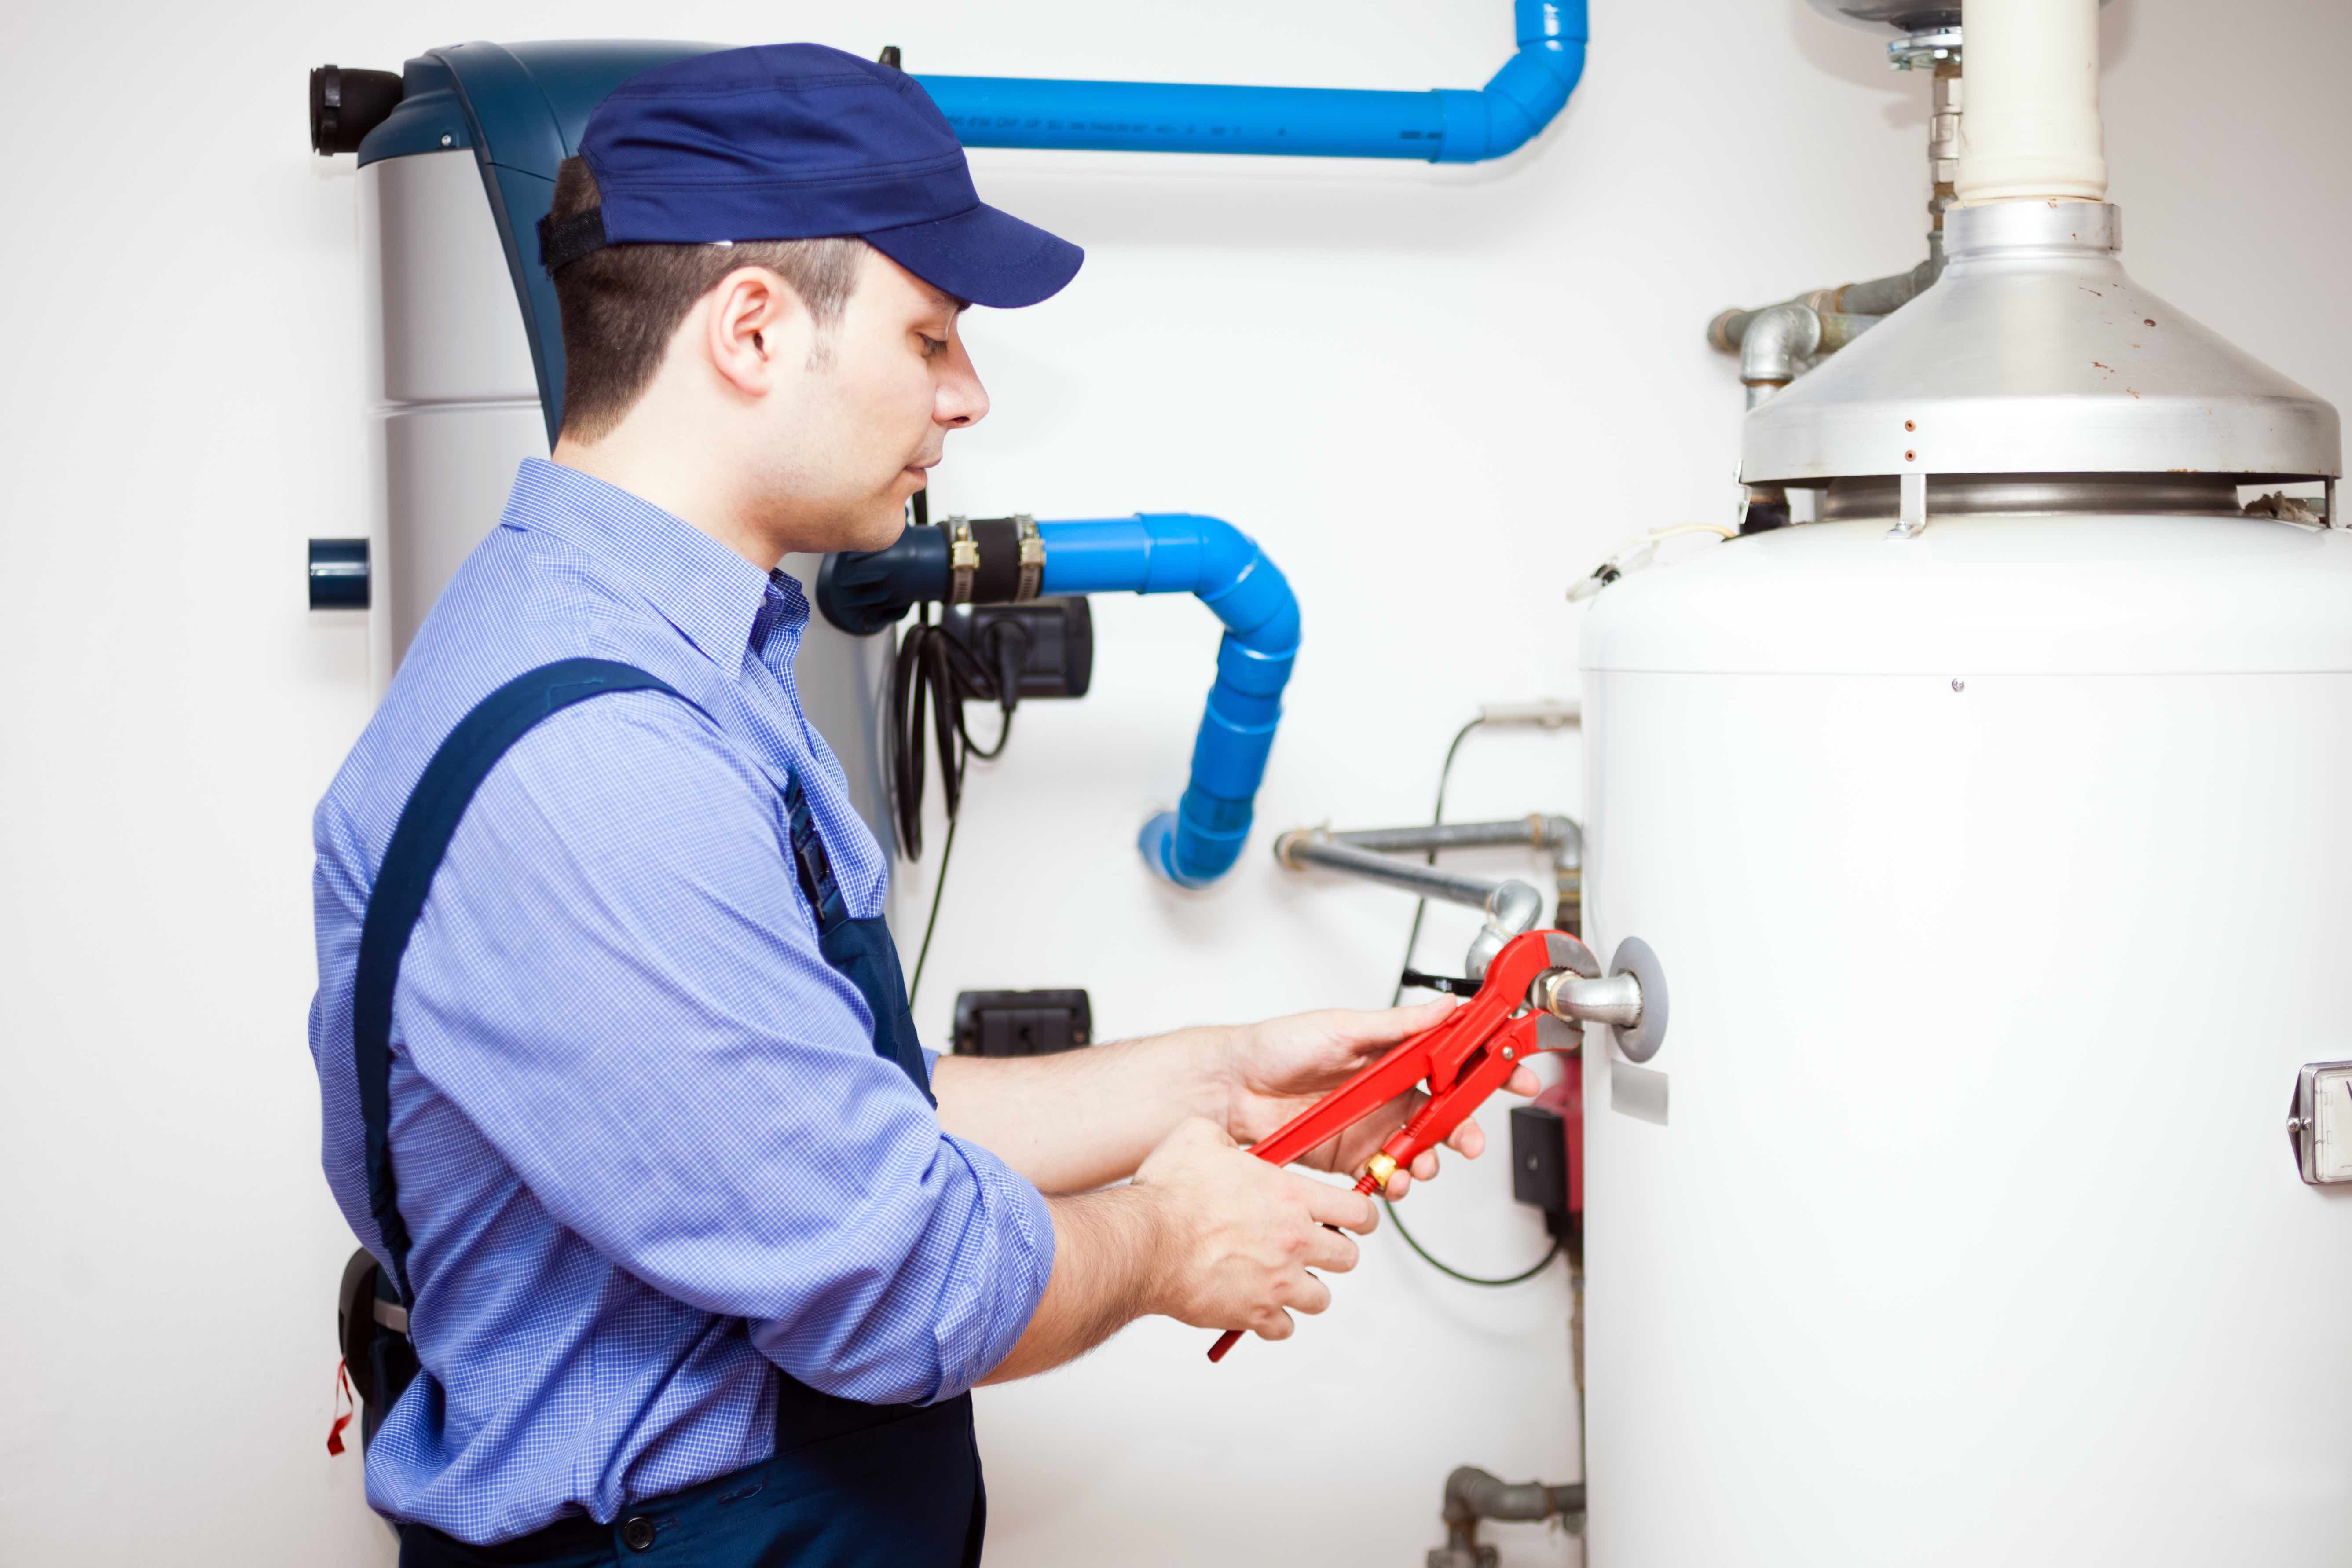 Tucson Water Heater Installation, AirZona Heating and AC